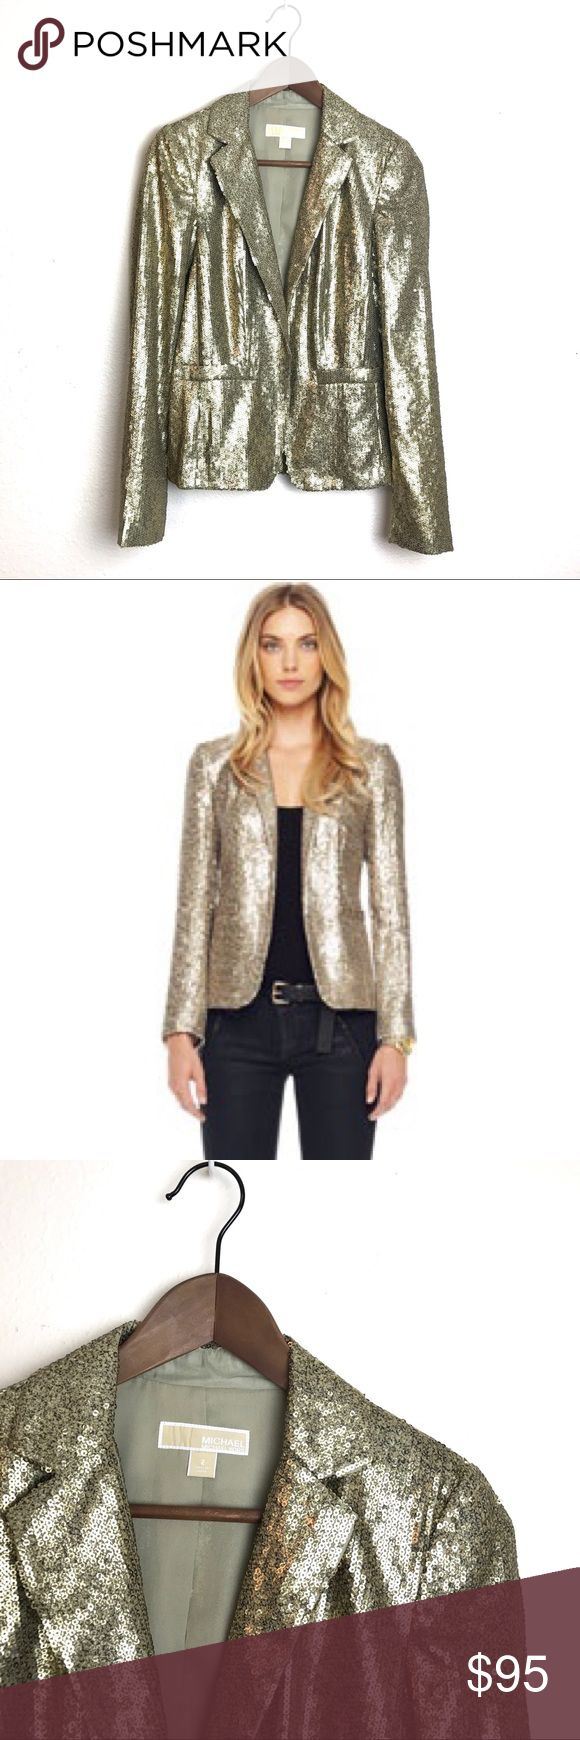 "NWOT // Michael Kors Gold Sequin Blazer Jacket Michael Kors Gold Sequin Blazer Jacket. 22"" long. 24"" sleeve. Sequins are matte gold and bronze giving this jacket a reptile pattern. Sleeves, pockets and back slit are still sewn shut. I've looked over it in detail and I can only tell two sequins are missing otherwise in excellent condition. Size 2. Please feel free to ask questions or make on offer! Michael Kors Jackets & Coats Blazers"